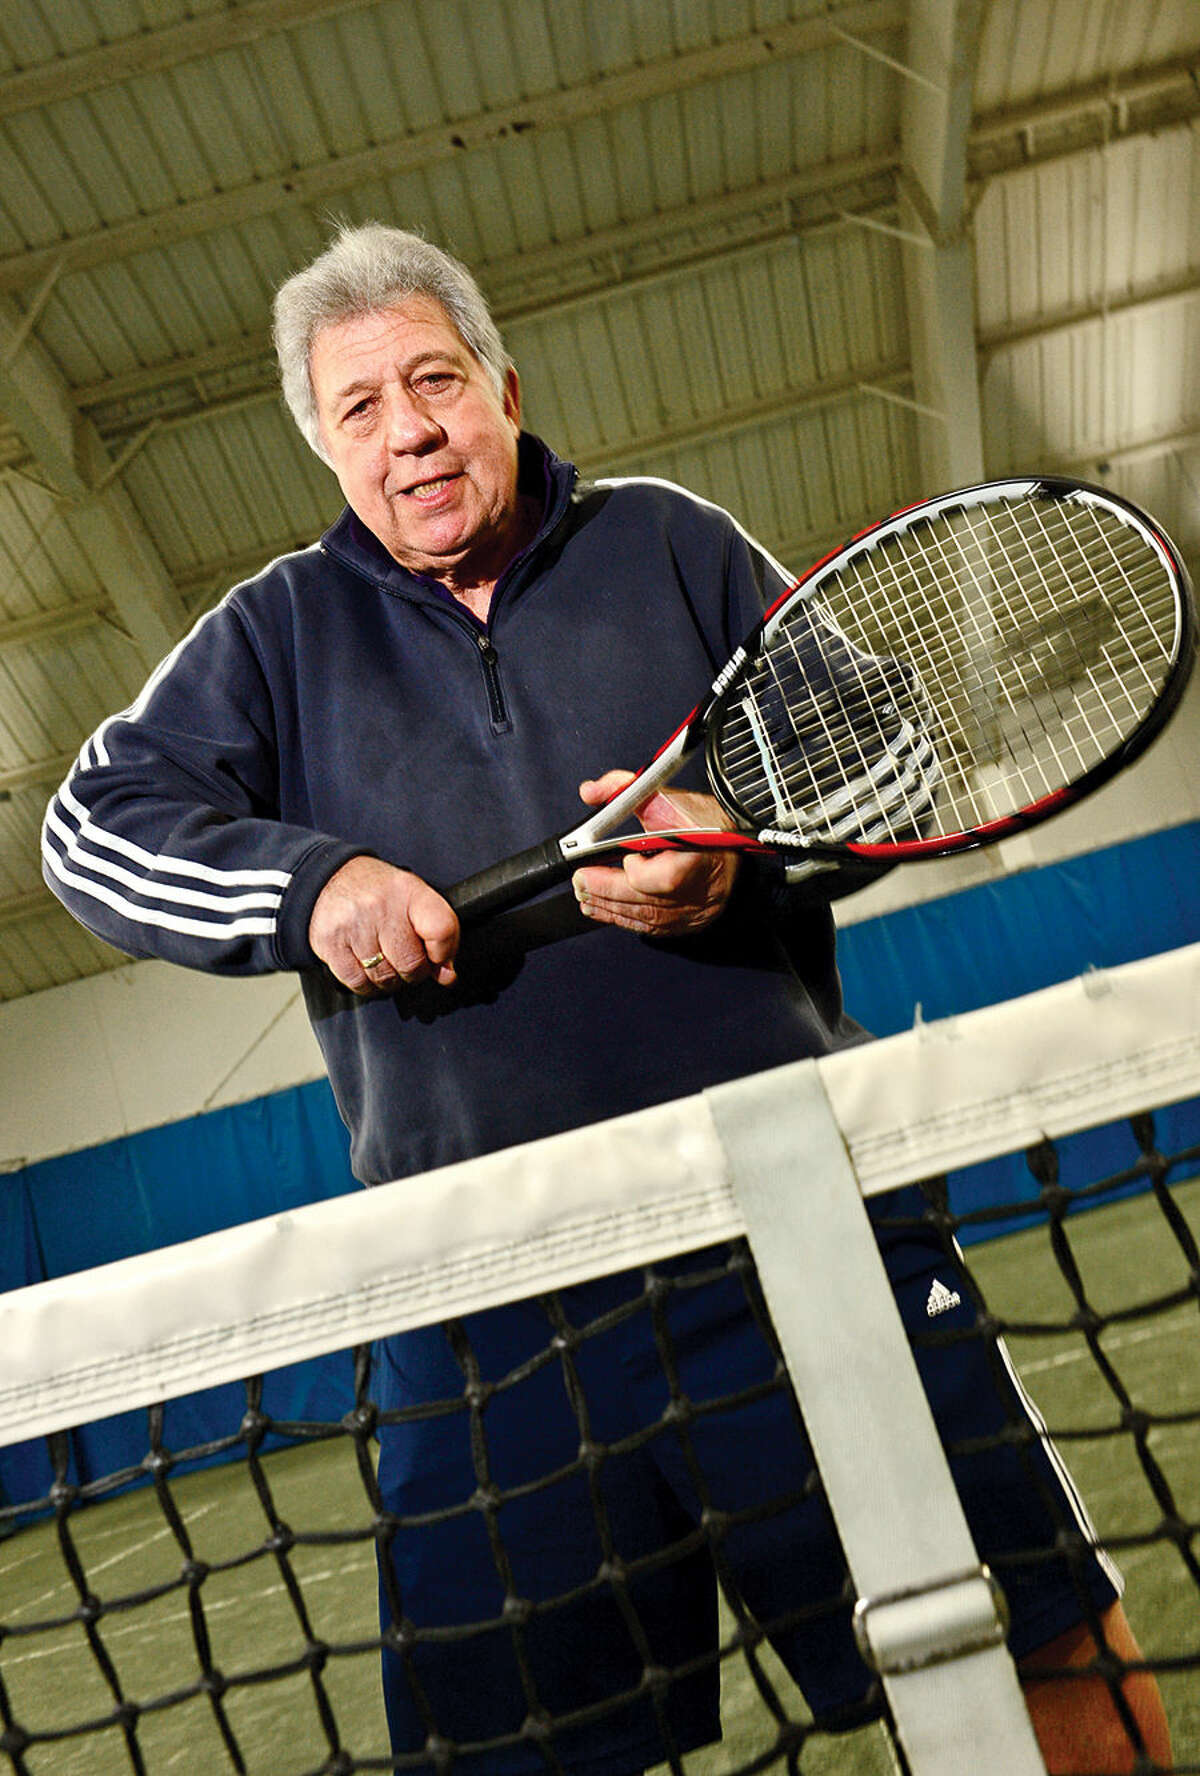 Glen Englander, a tennis pro at Four Seasons Racquet Club in Wilton, says he has never met a student who couldn't reach their full potential.